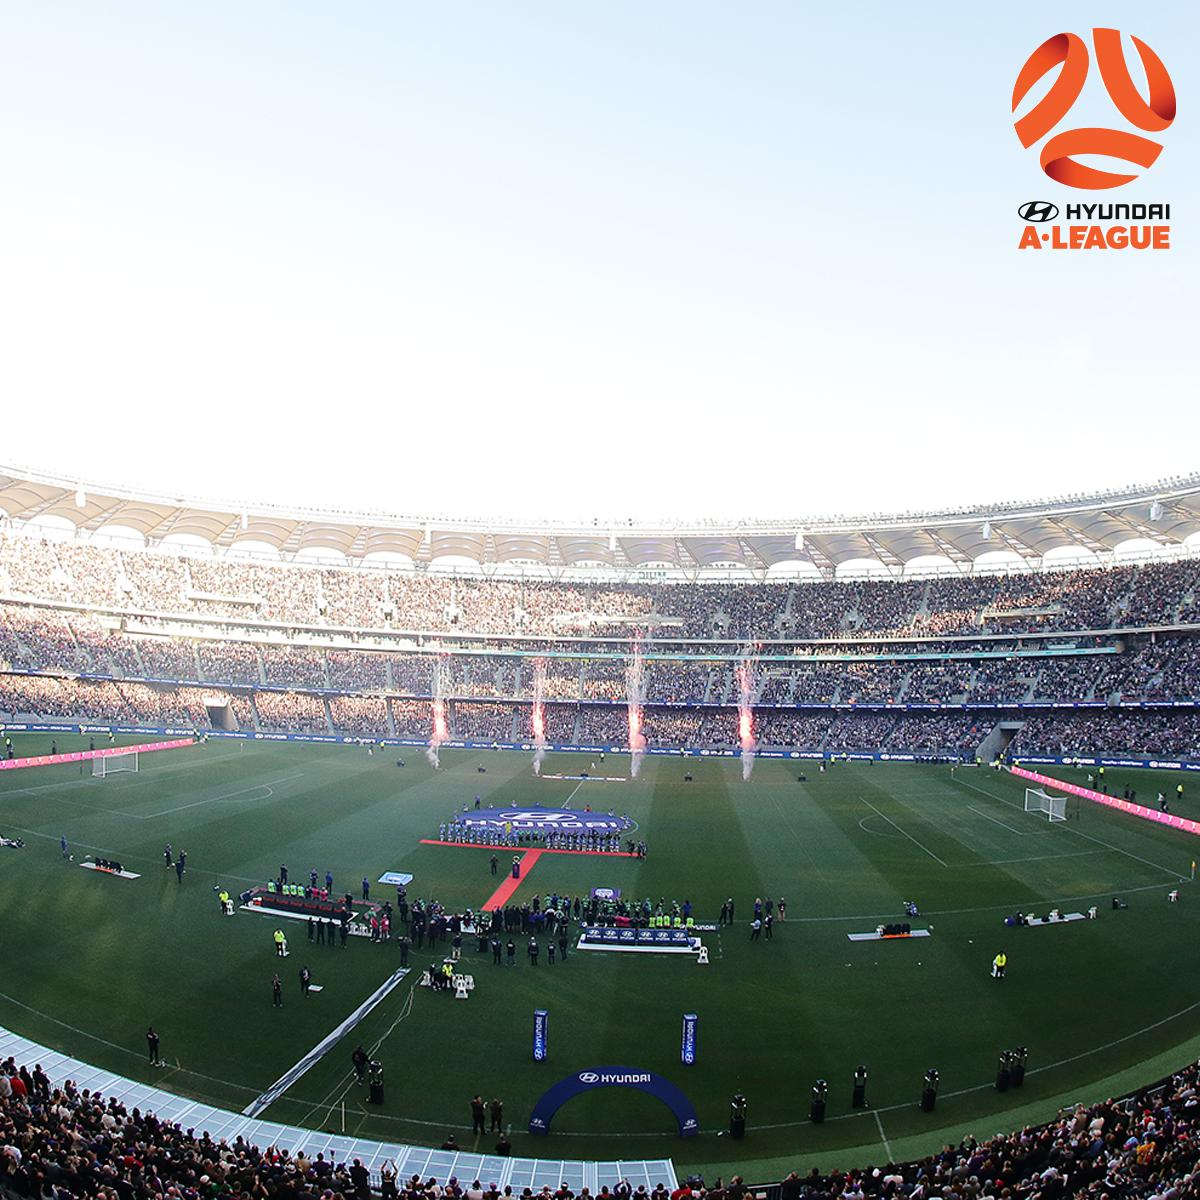 CROWD 👏👏👏  Congratulations to the 56,371 fans who have flocked to @OptusStadium for the #ALeagueGF.  #ALeagueGF #FeelTheFinals